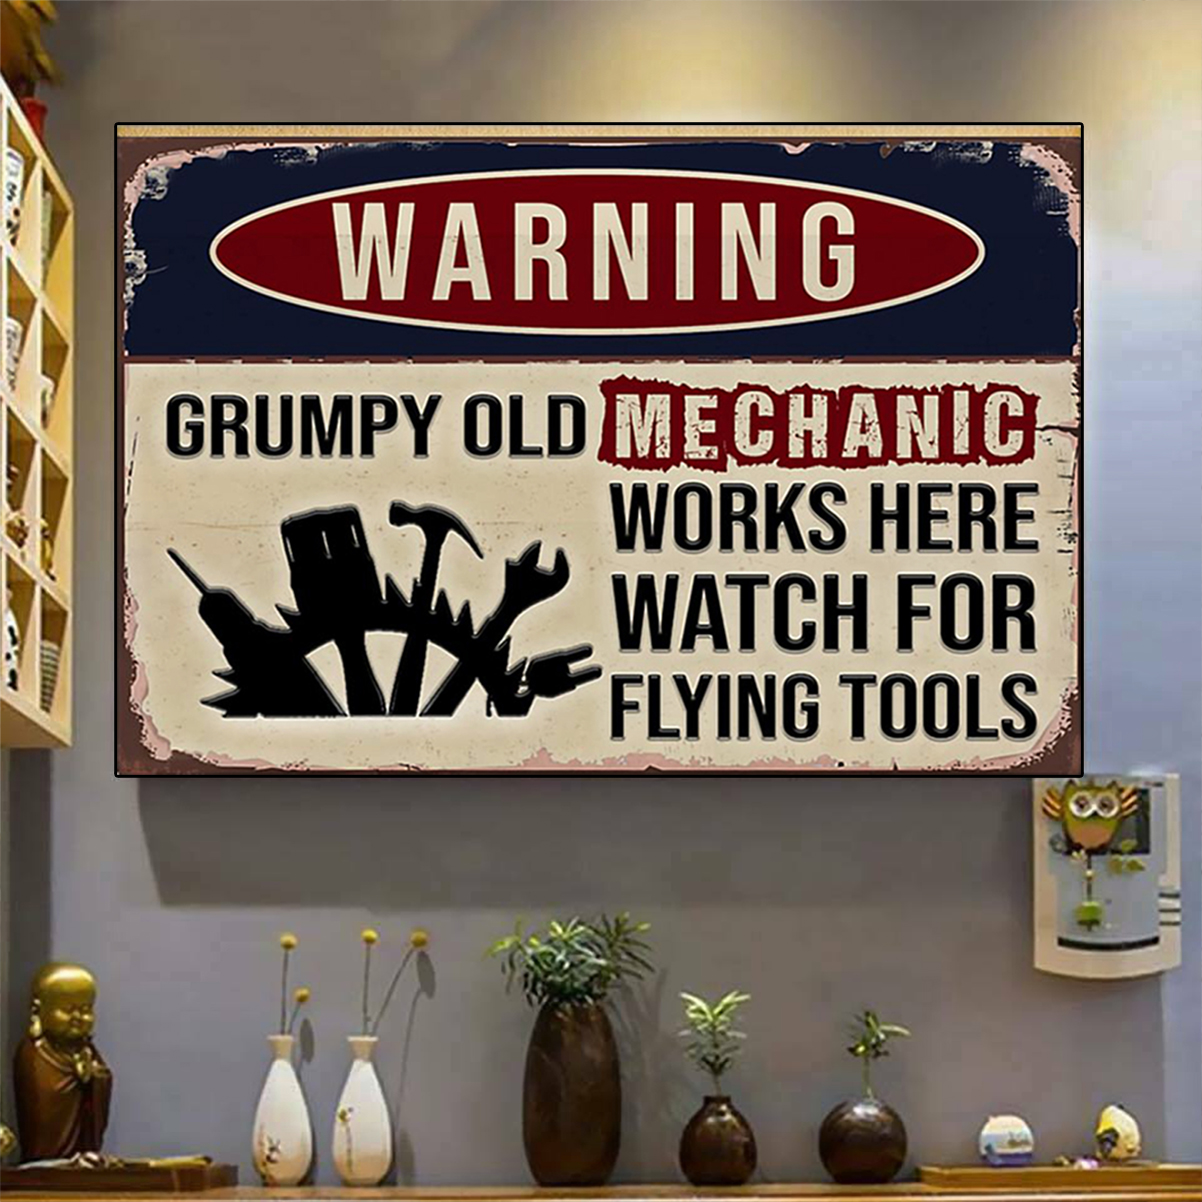 Warning grumpy old mechanic works here watch for flying tool poster A3